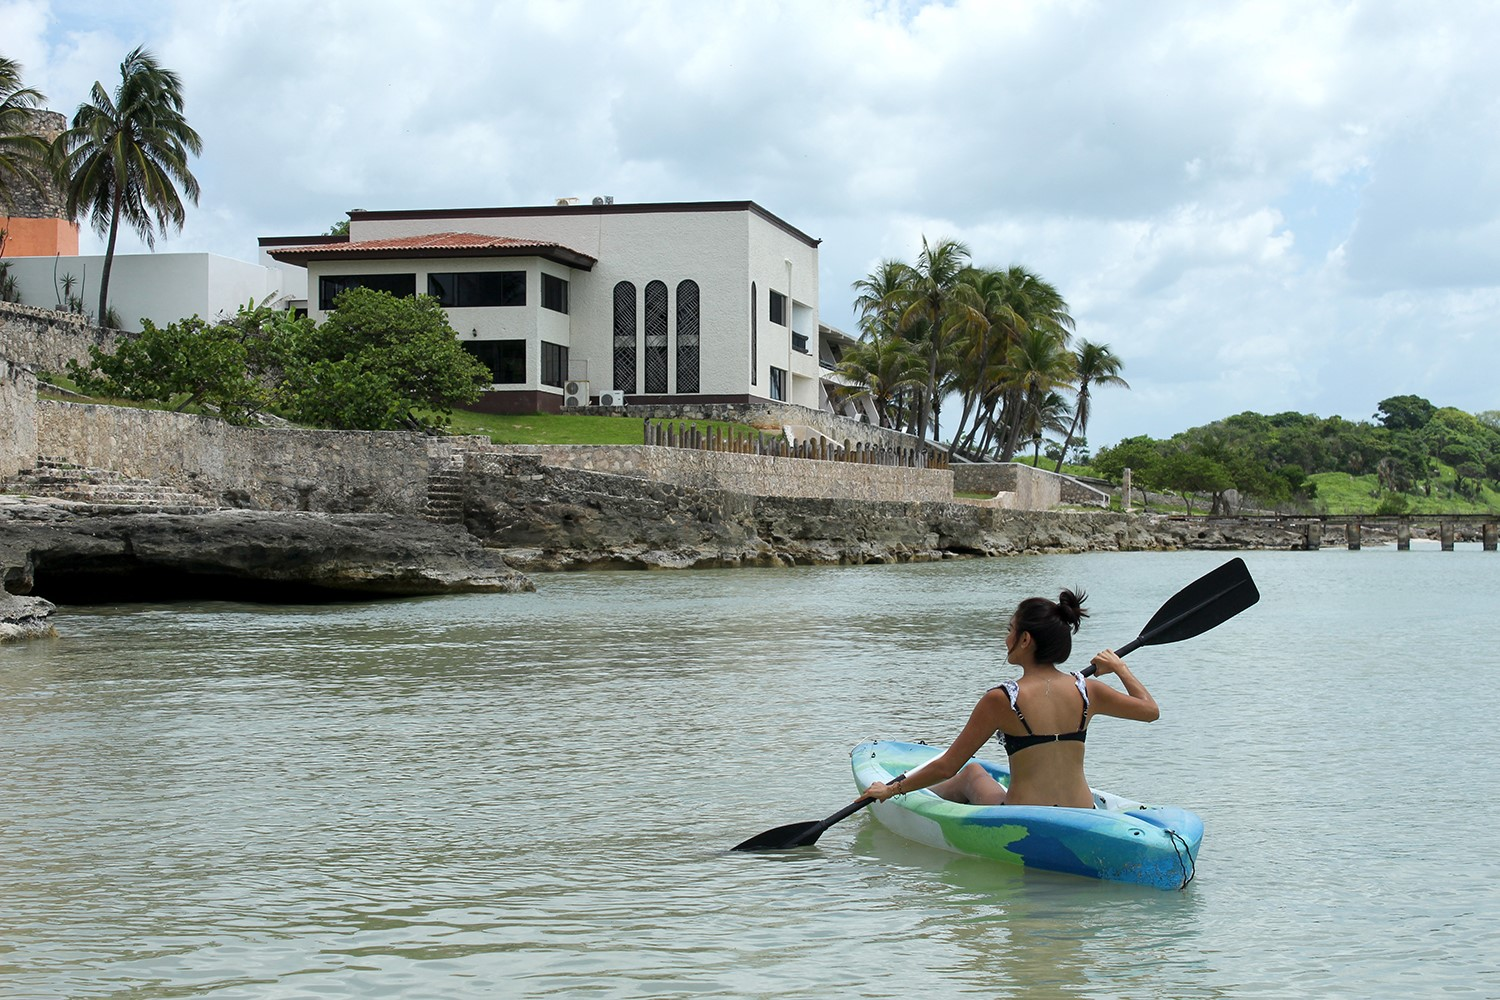 Kayak at Hotel Tucan Siho Playa Campeche